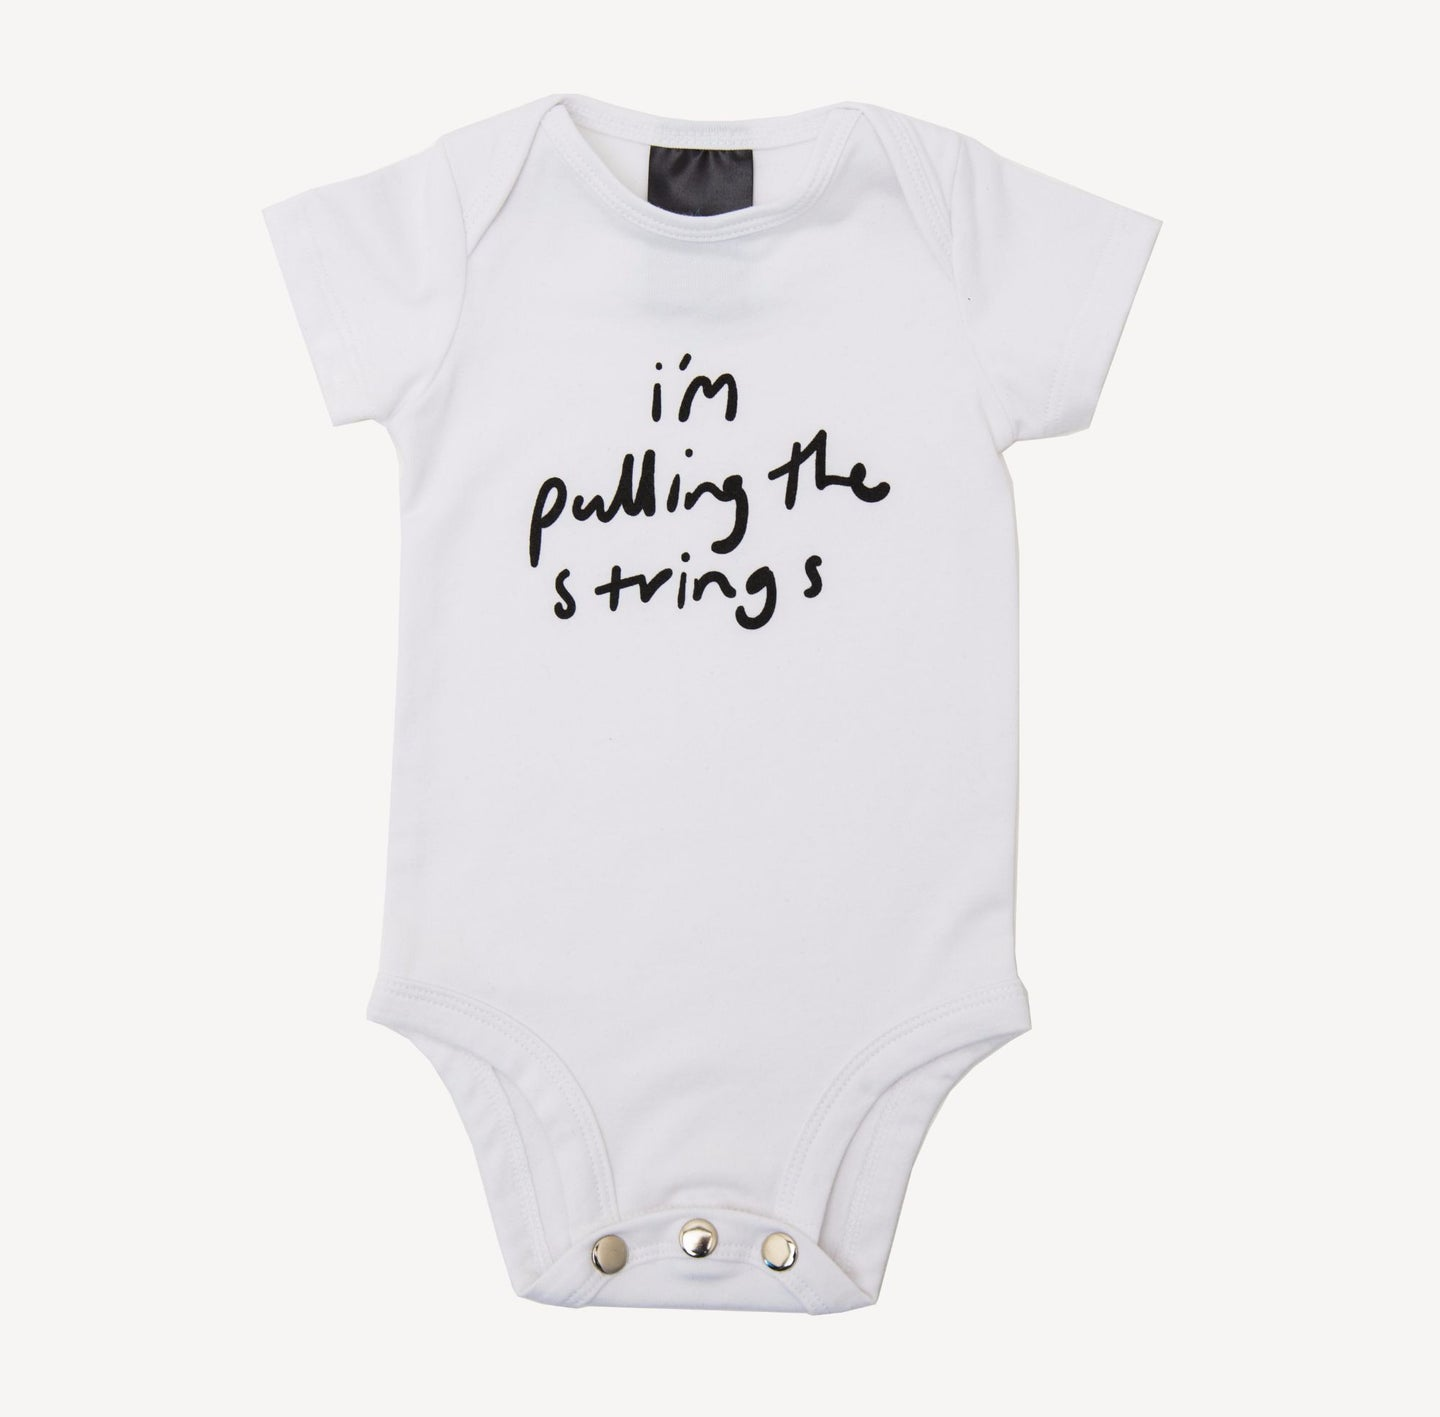 'I'm Pulling the Strings' Baby Onesie